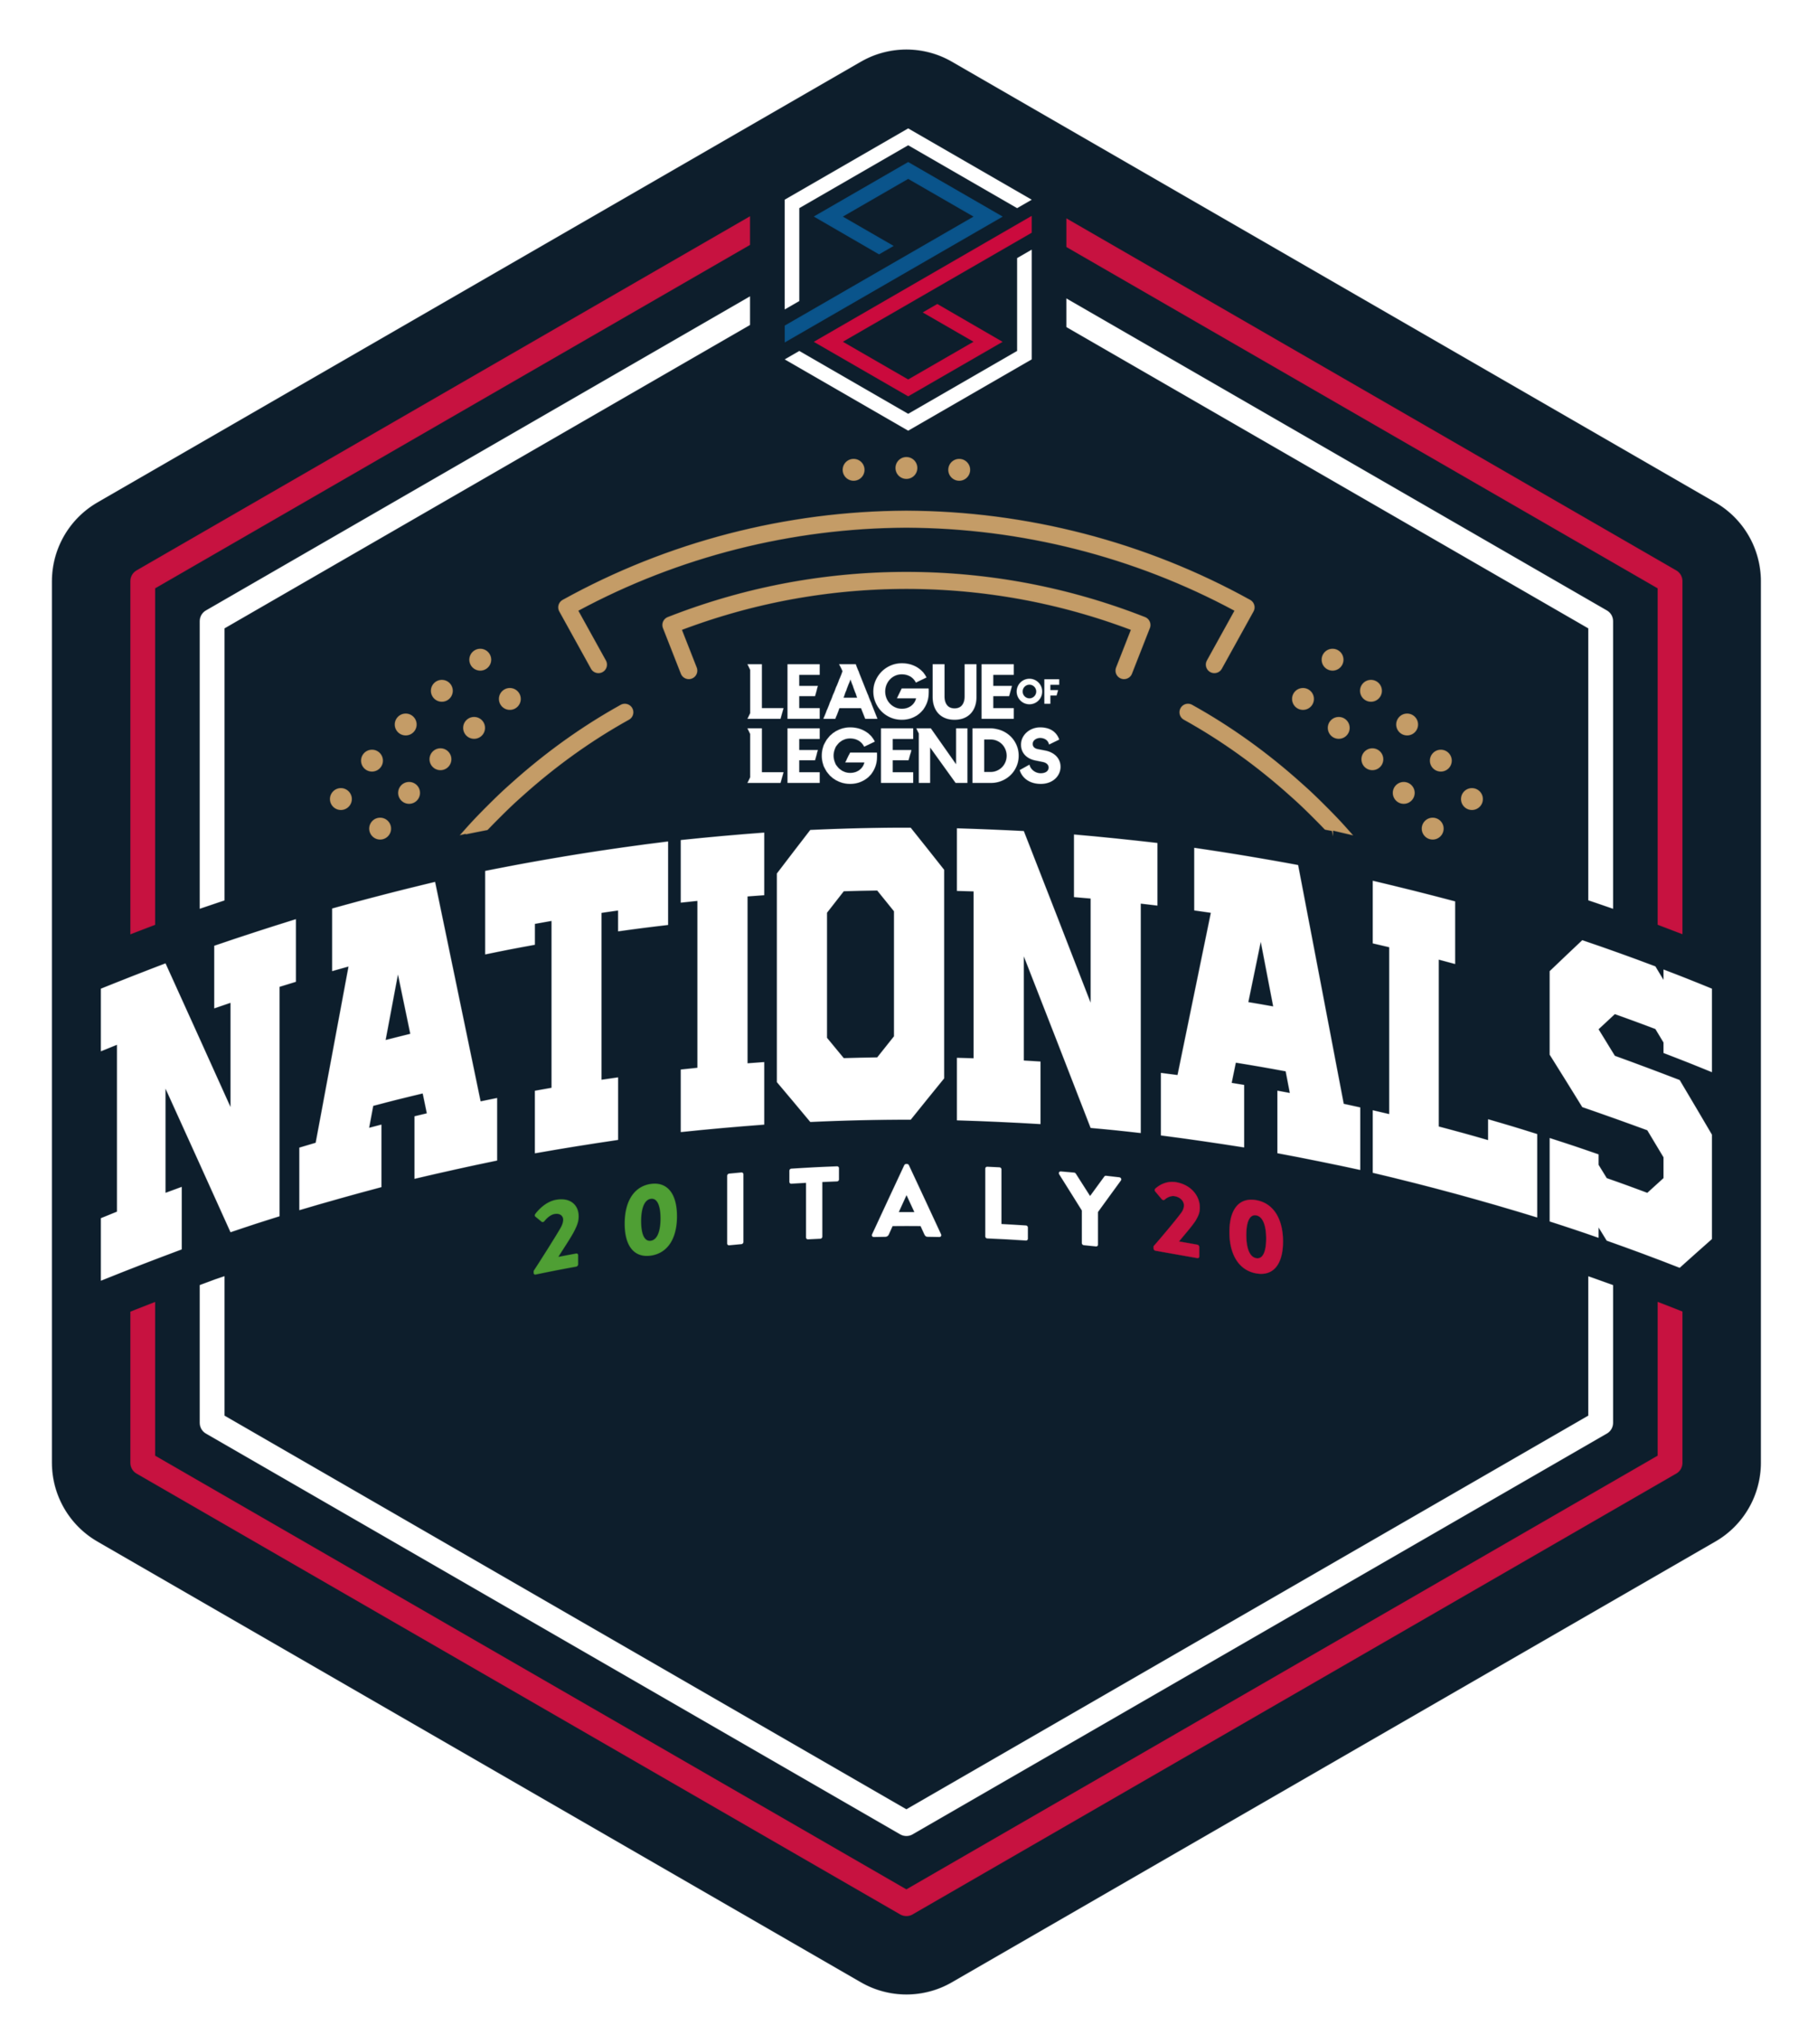 Pg Nationals 2020 Summer Promotion Oq Leaguepedia League Of Legends Esports Wiki